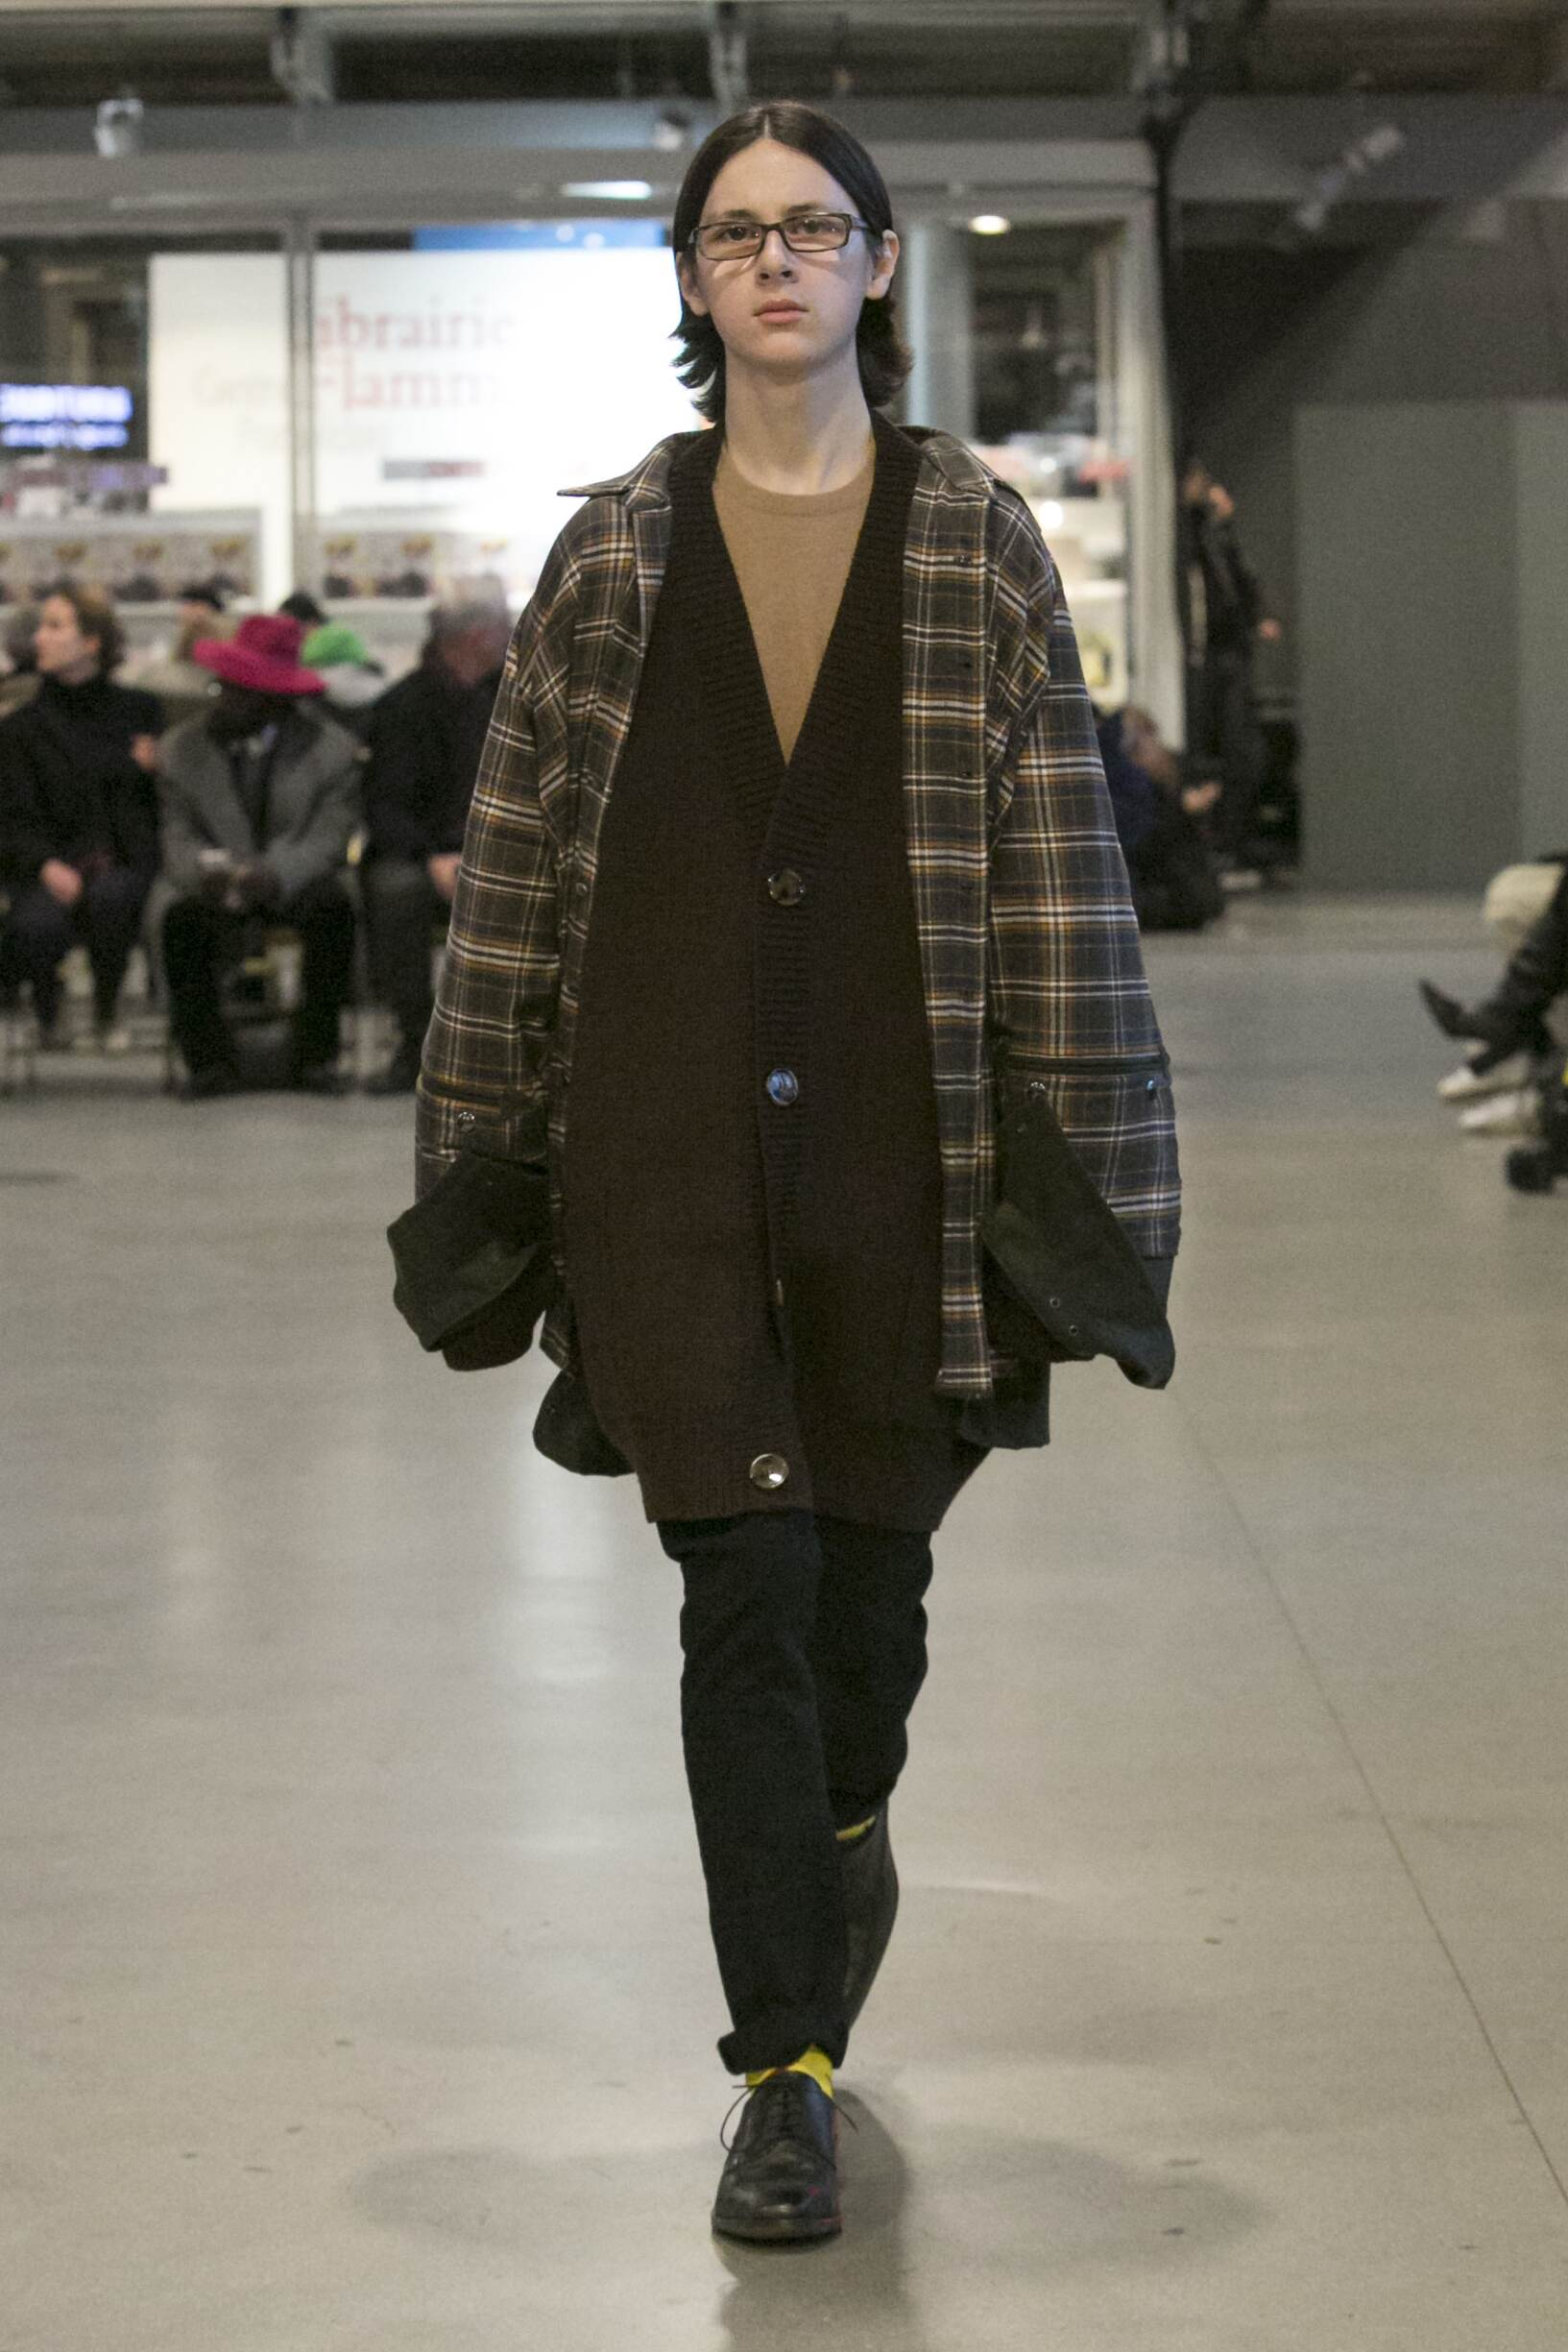 Catwalk Vetements Man Fashion Show Winter 2017